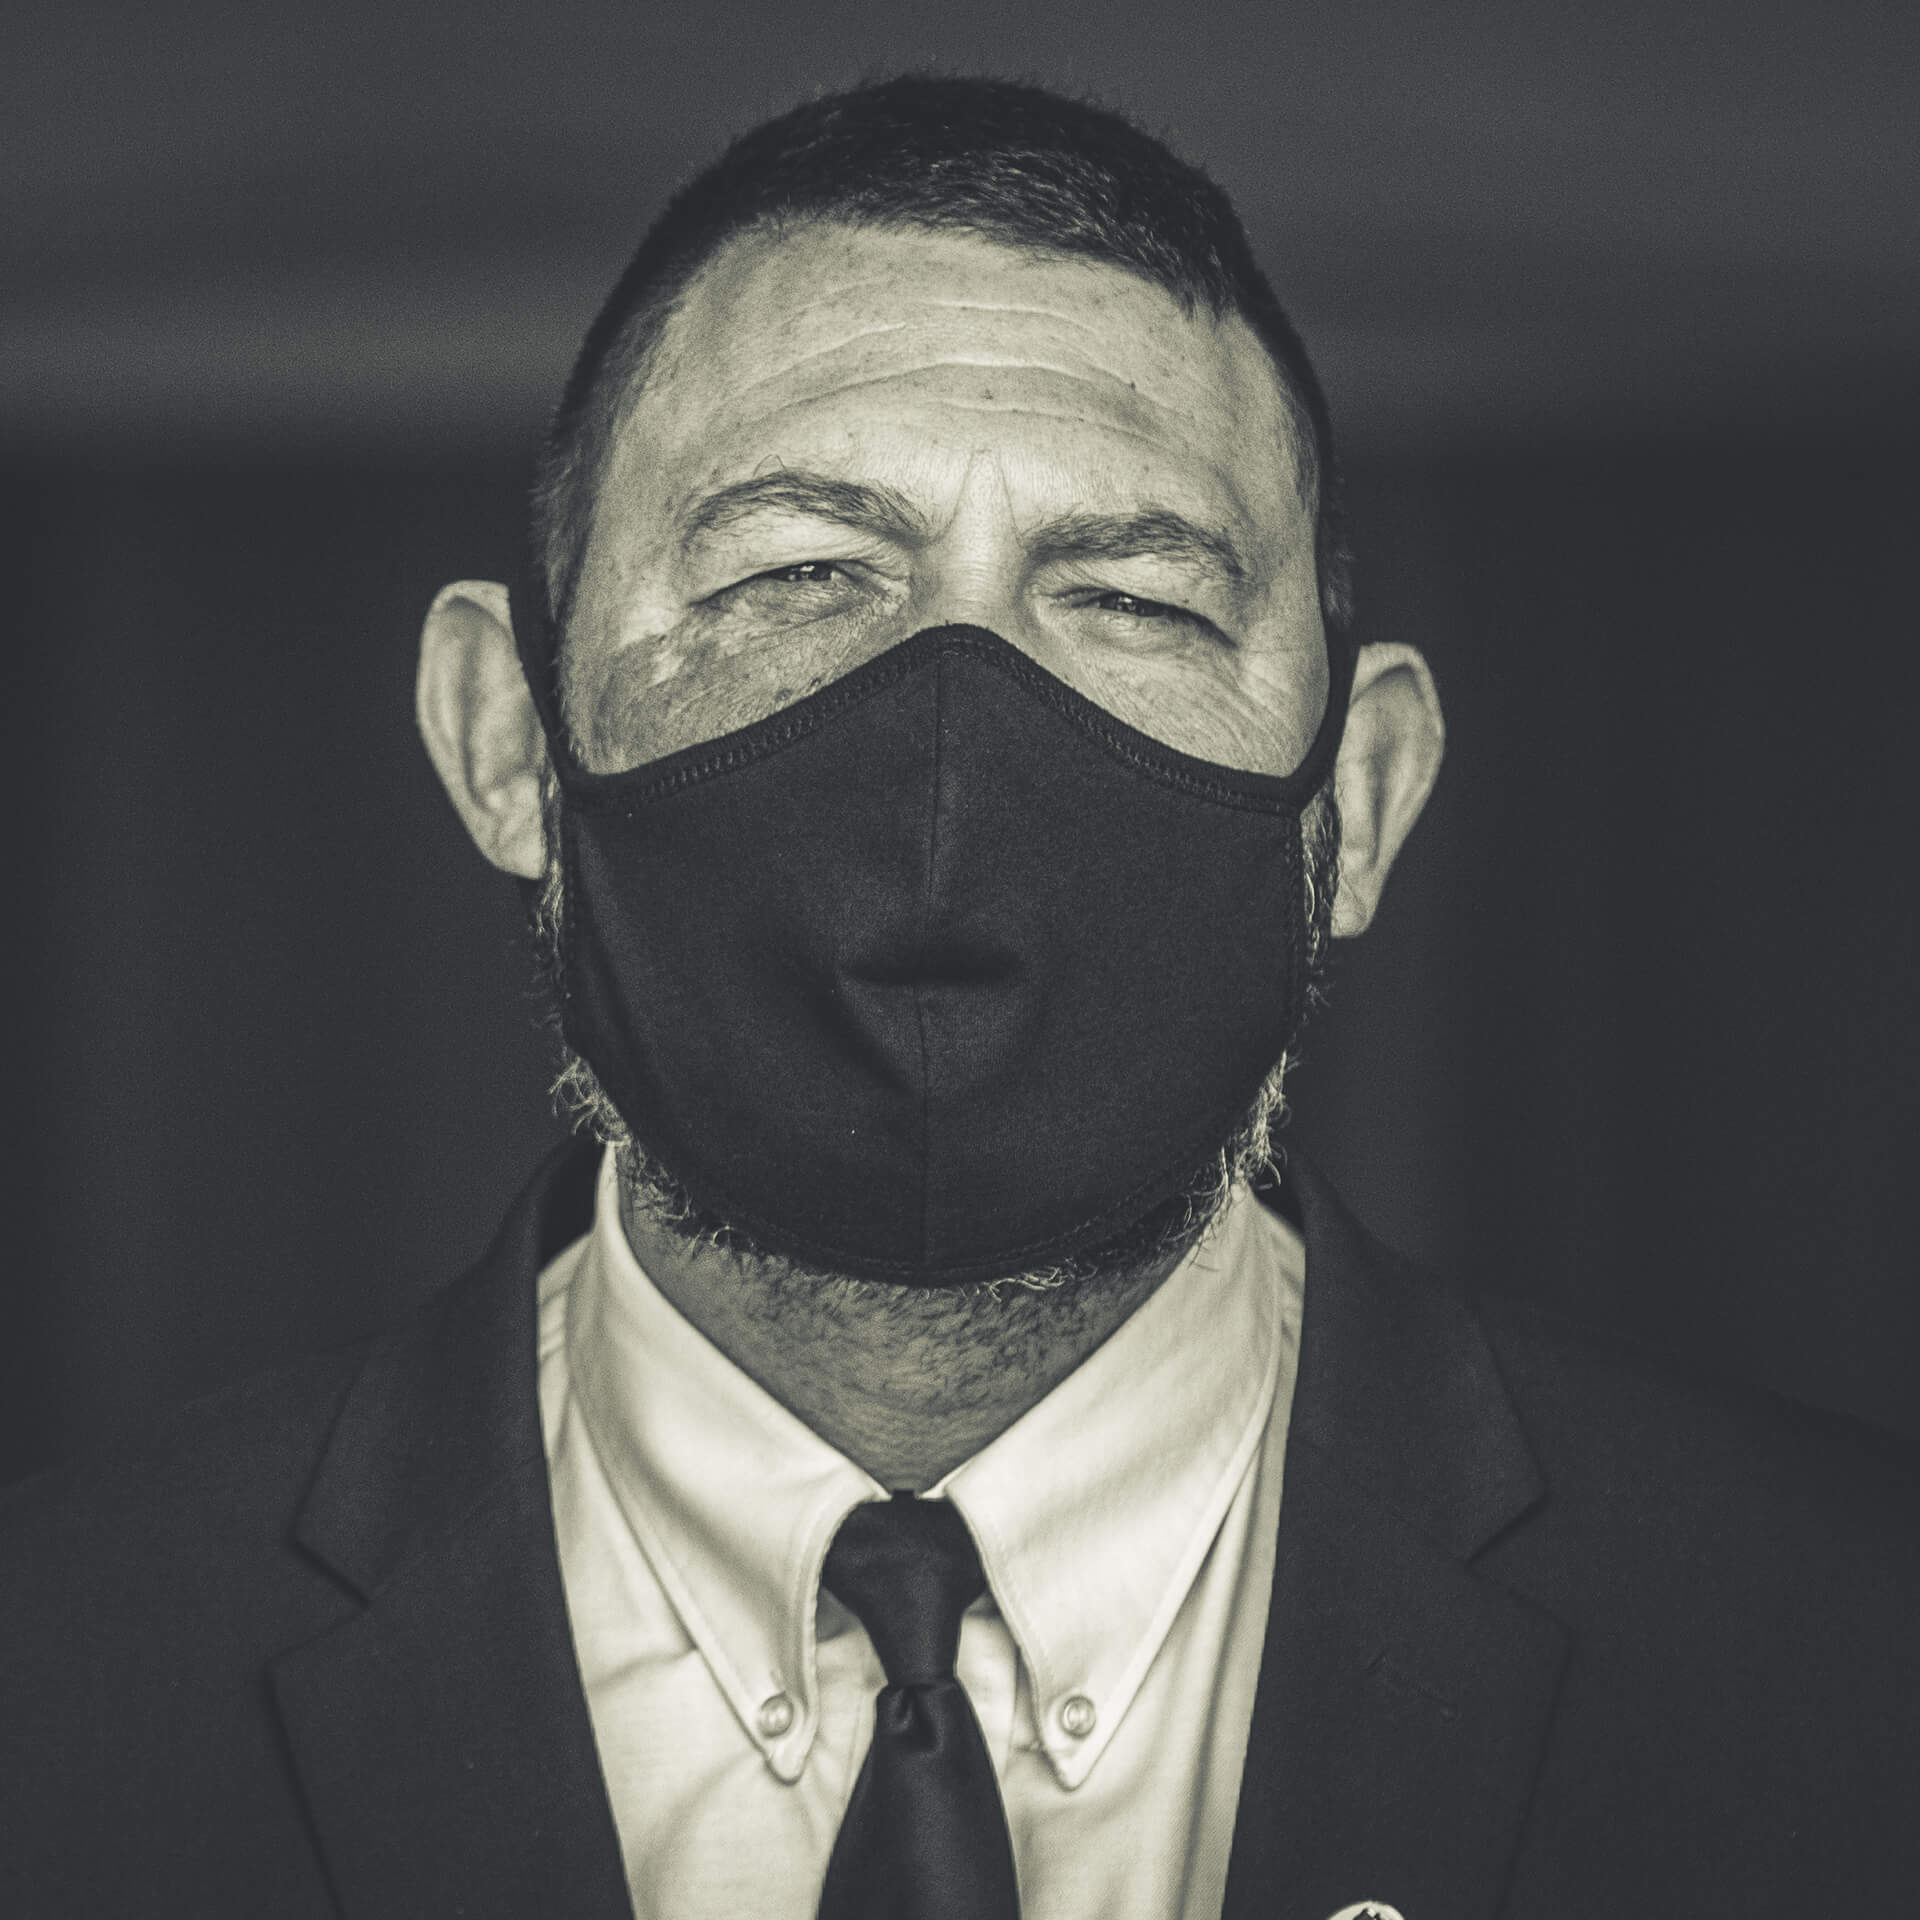 Adam, a Chapel Attendant at the Vale Cremaorium, Fladbury, (seen in Black & White) stands at the Chapel door awaiting mourners. He is wearing a black coloured Face Mask.